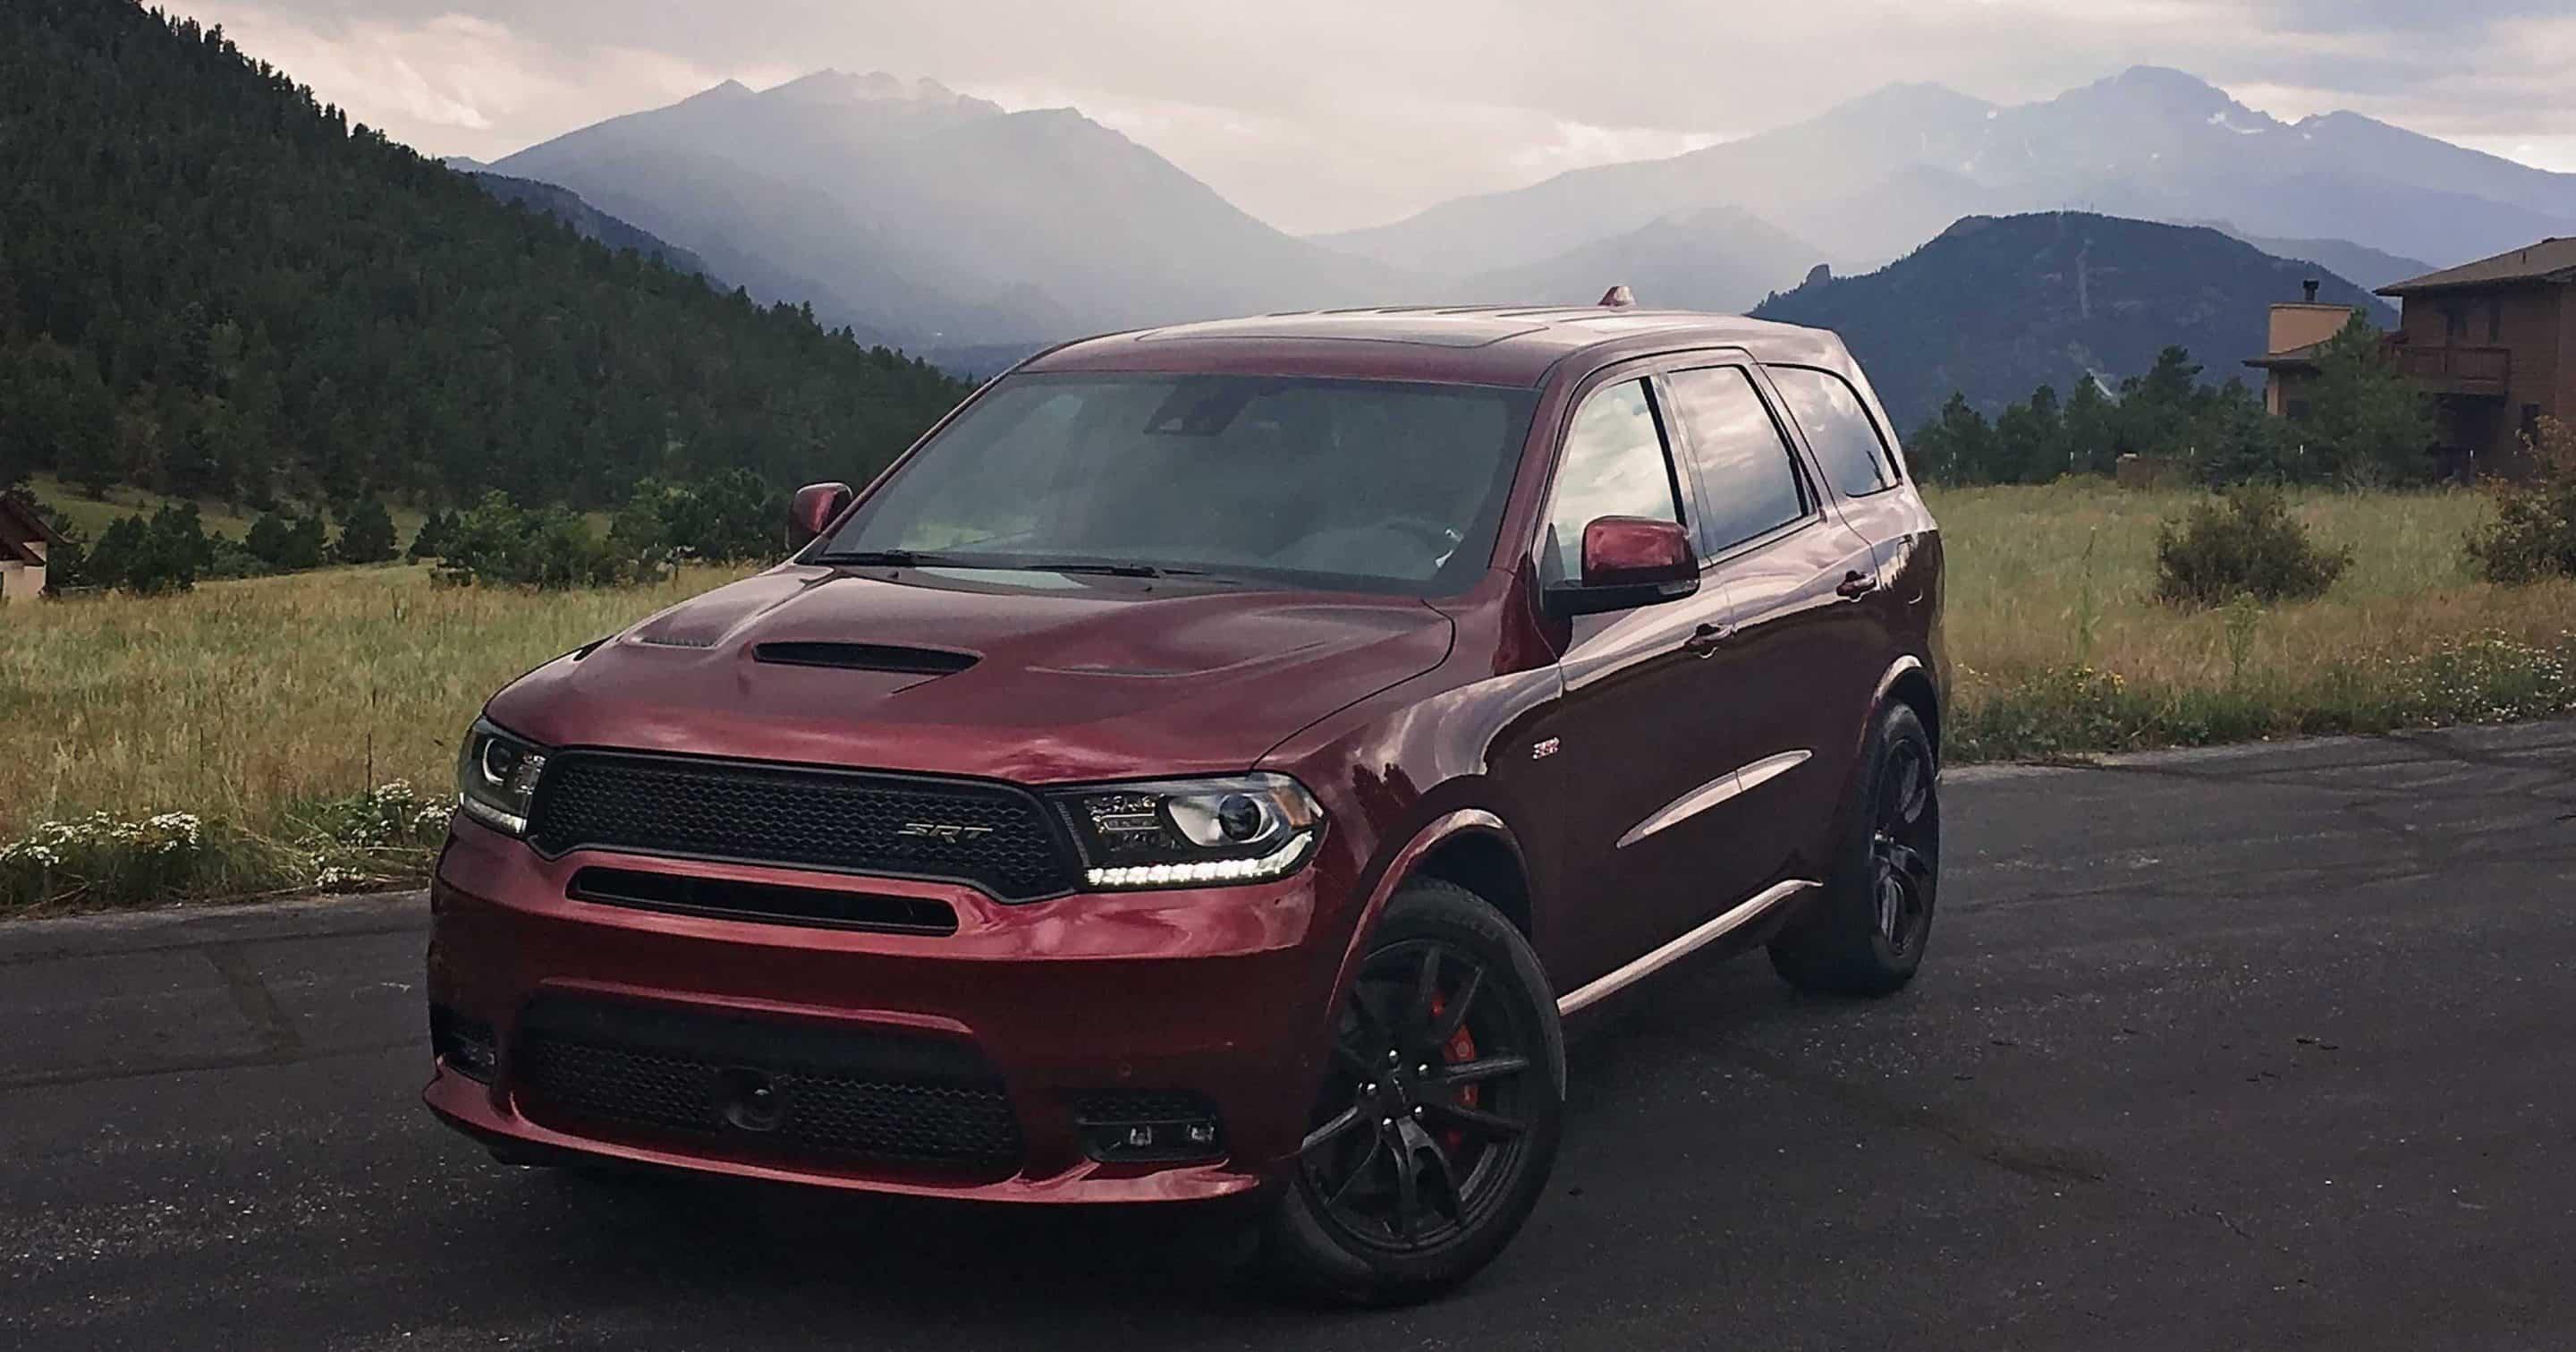 2018 Dodge Durango Srt Review Most Powerful 3rd Row Suv